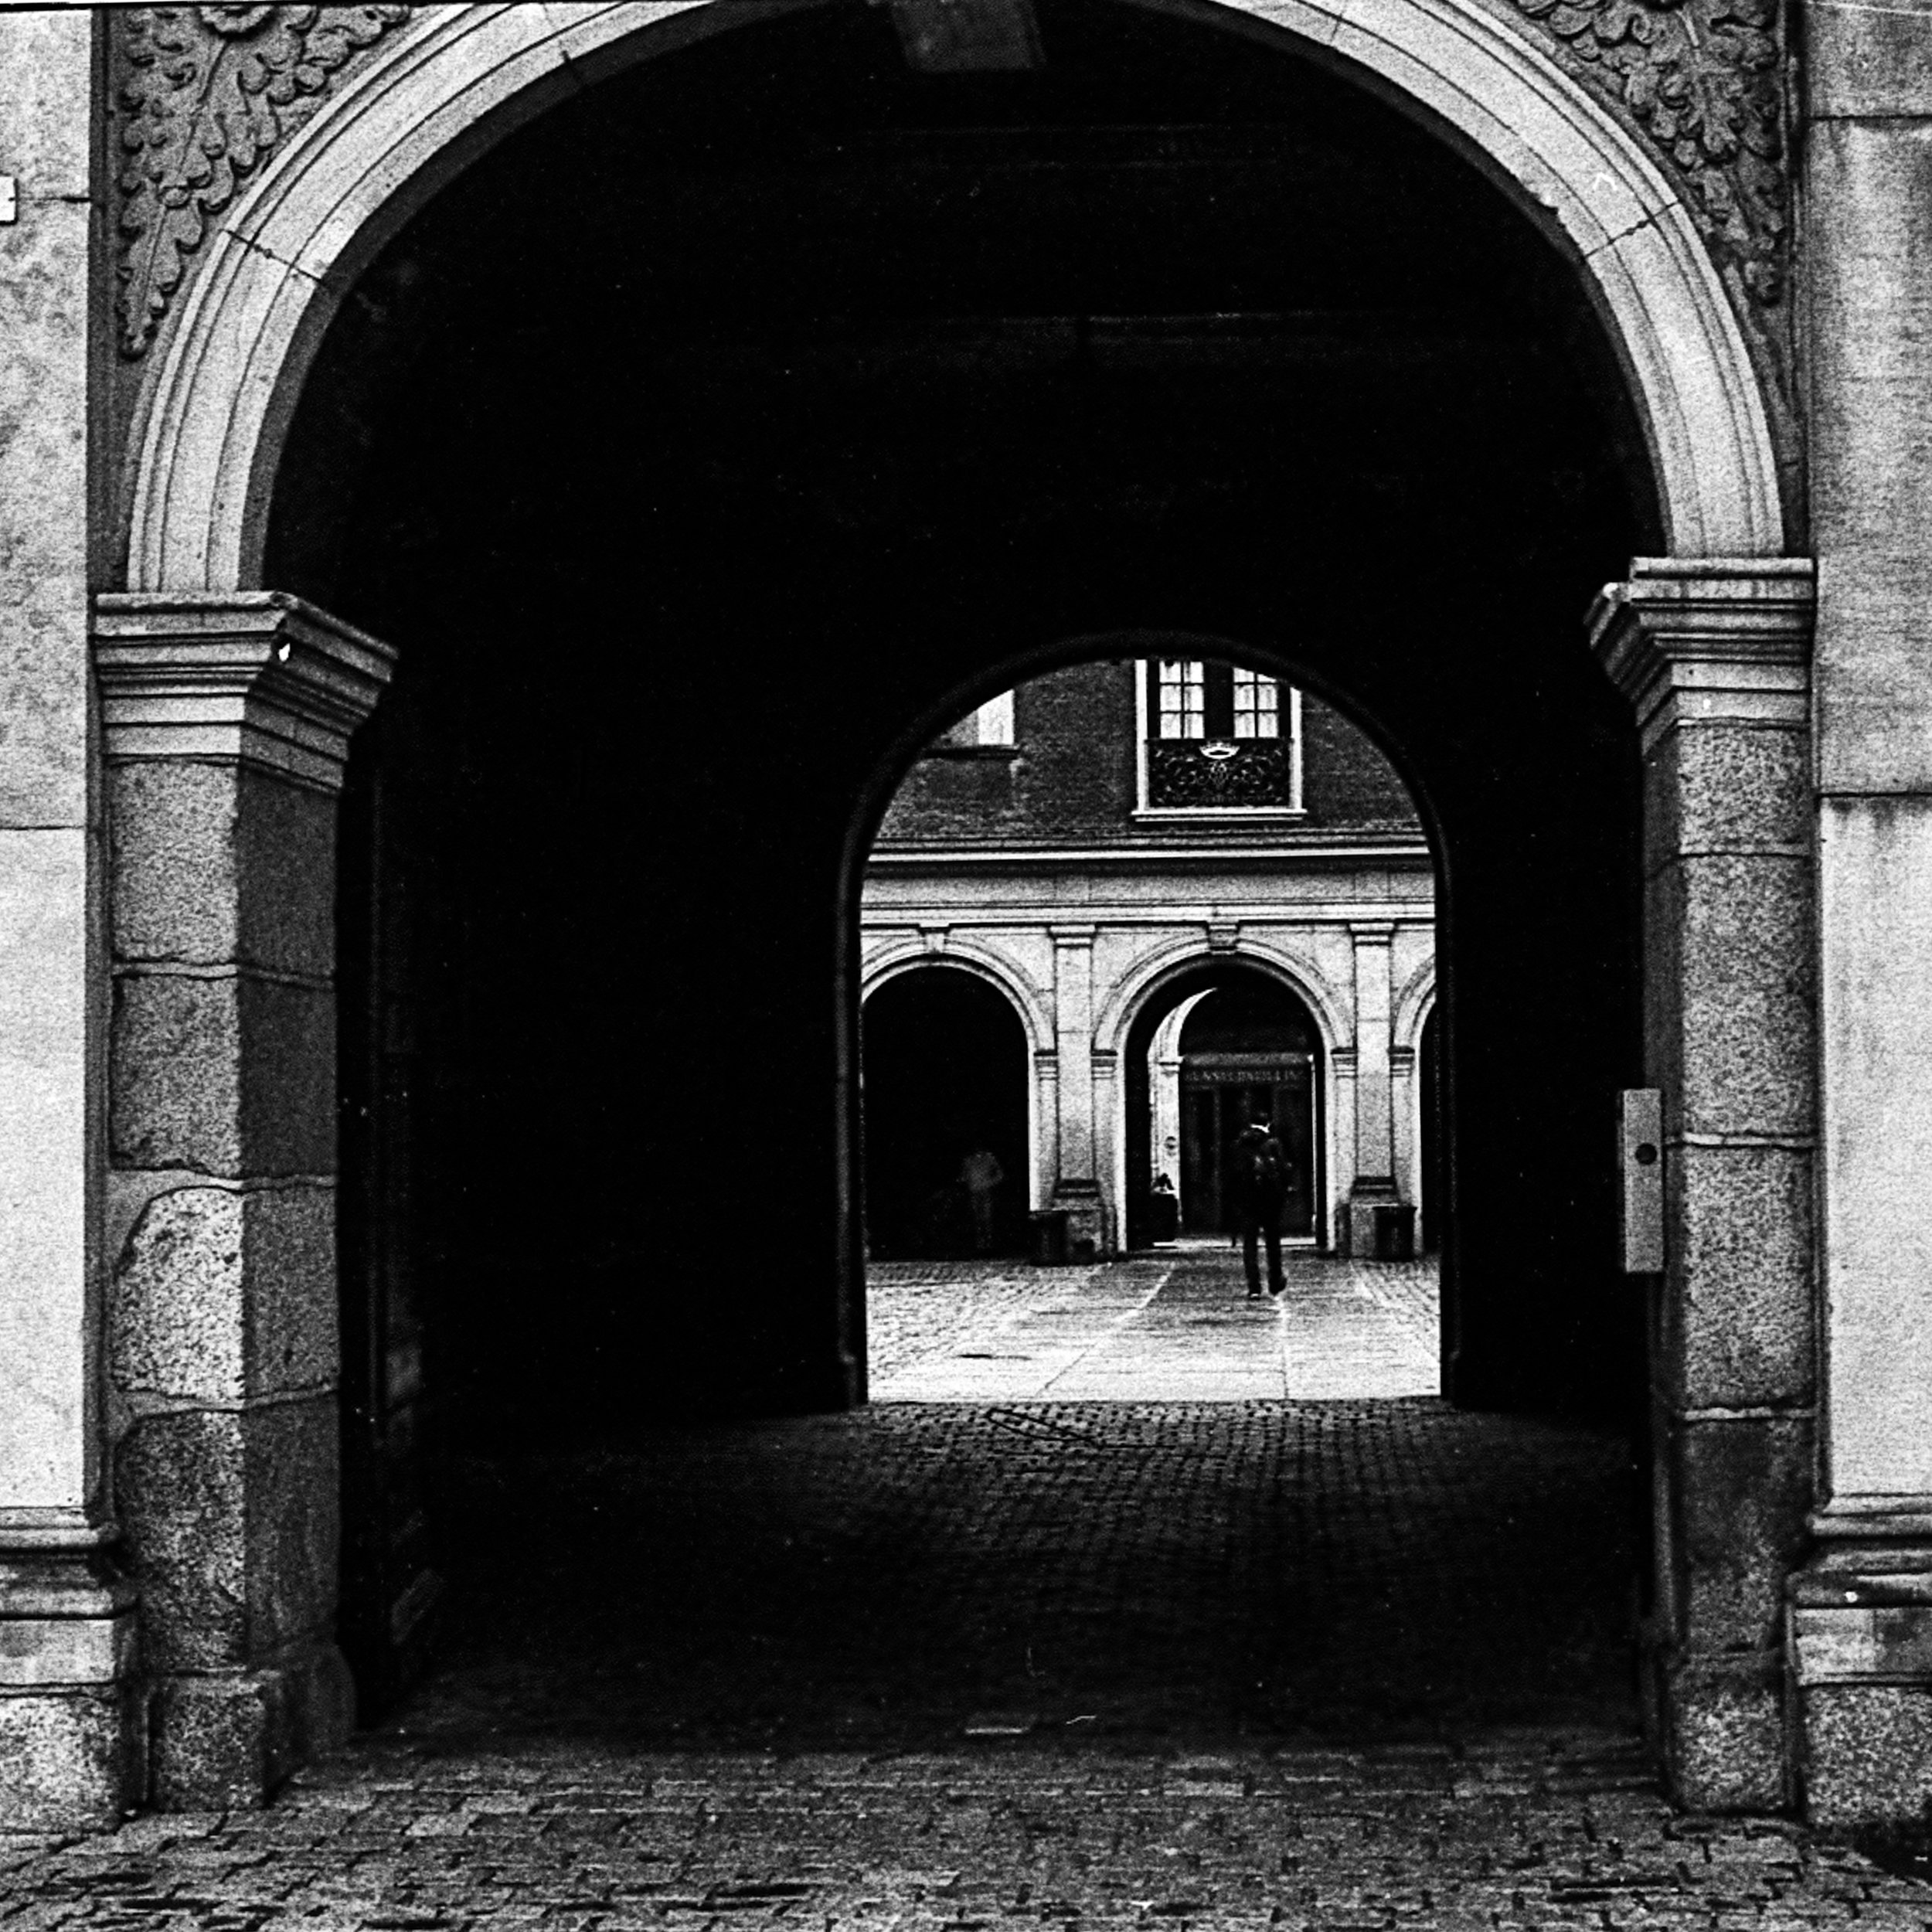 Day 127 - Arches